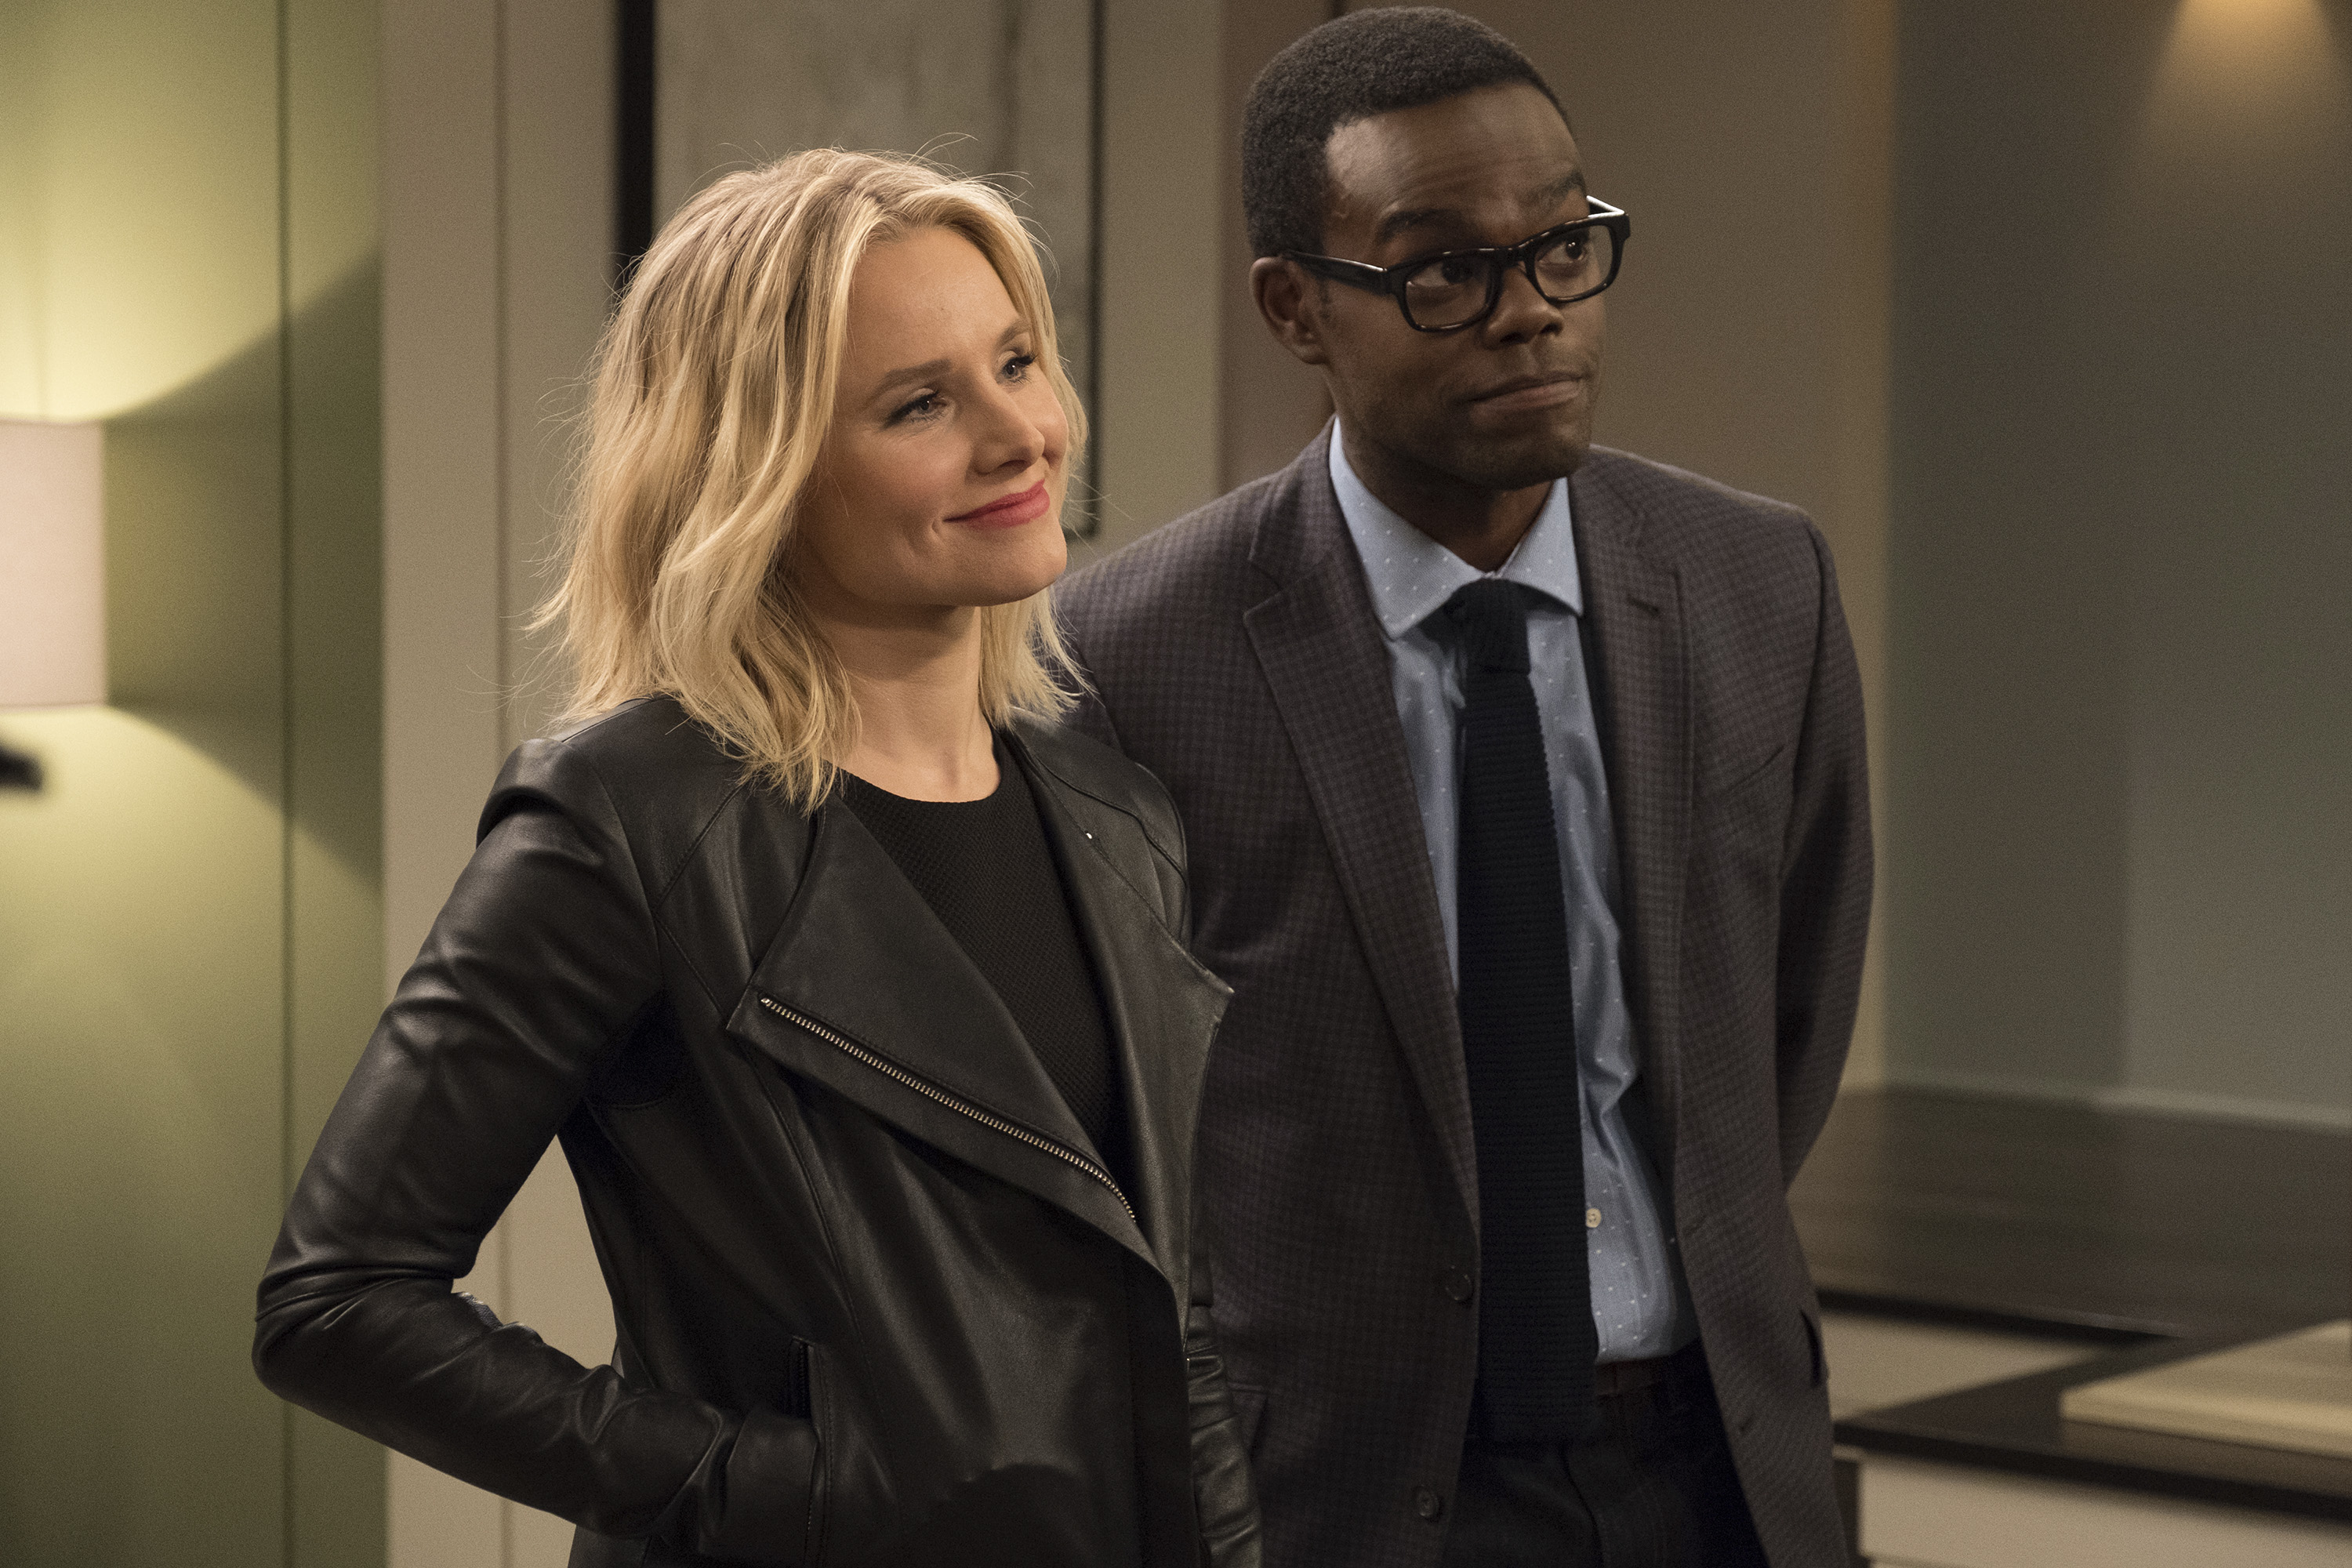 The Good Place: Top Moments from